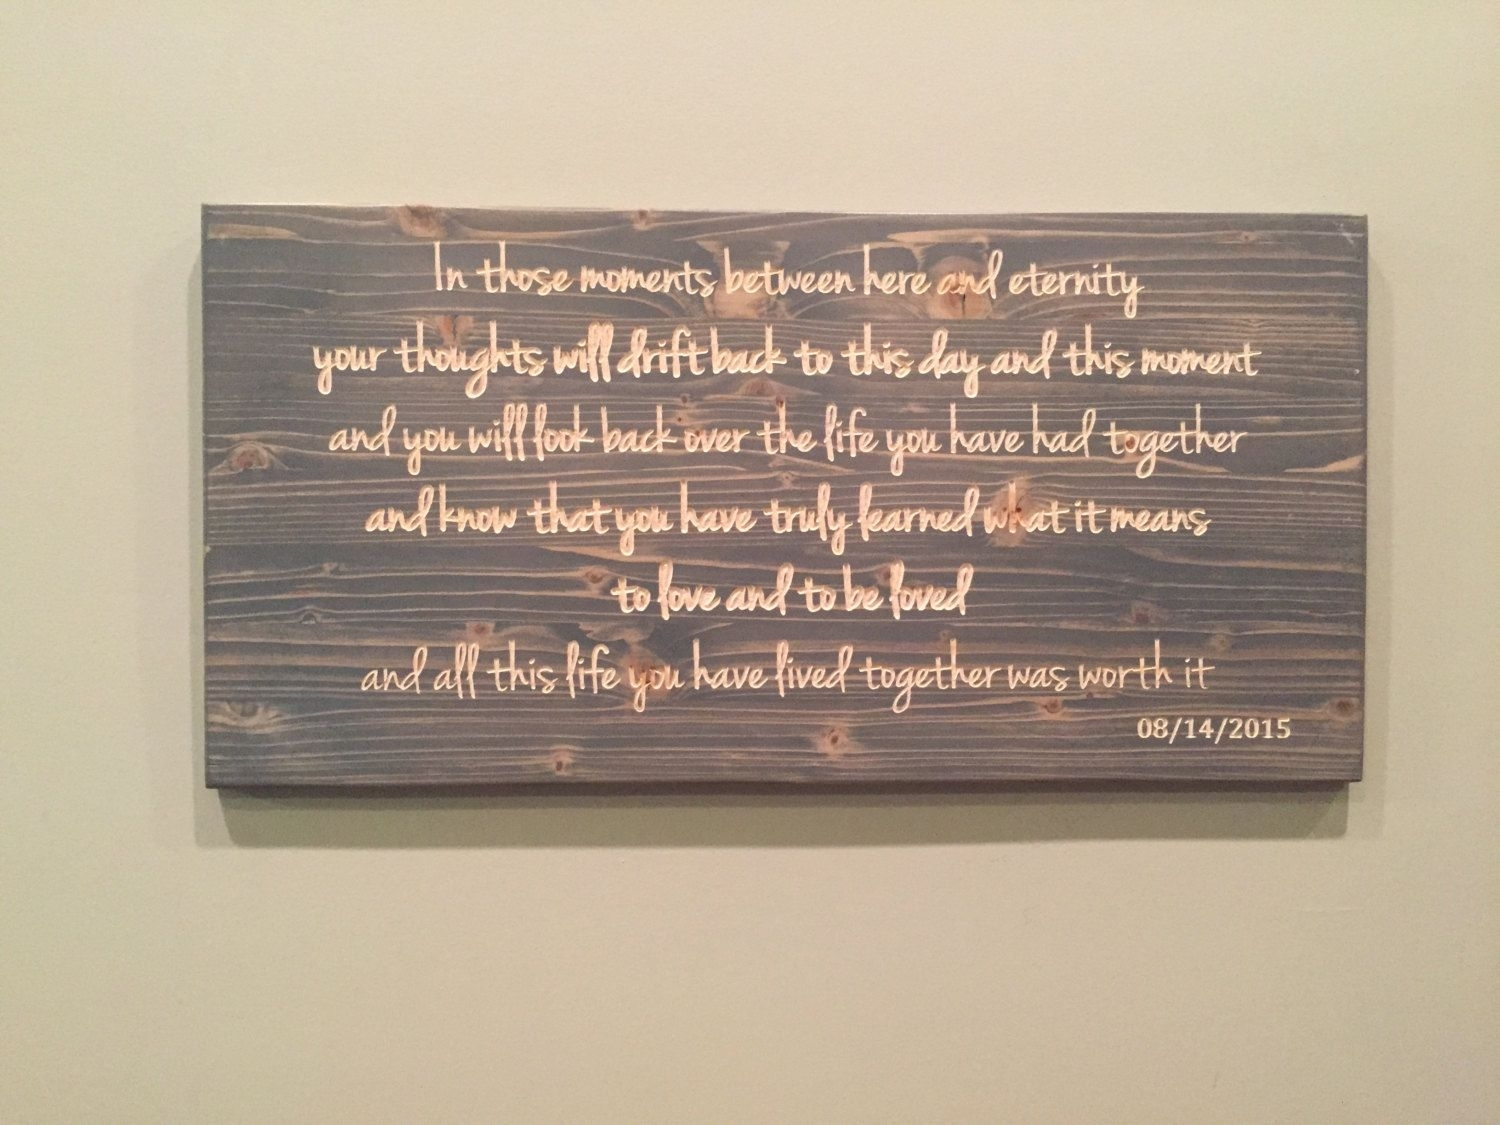 Wedding Vows, Carved Wood, Custom Quote Sign, Carved Wood Wall Art Intended For Most Recent Wood Wall Art Quotes (Gallery 1 of 20)